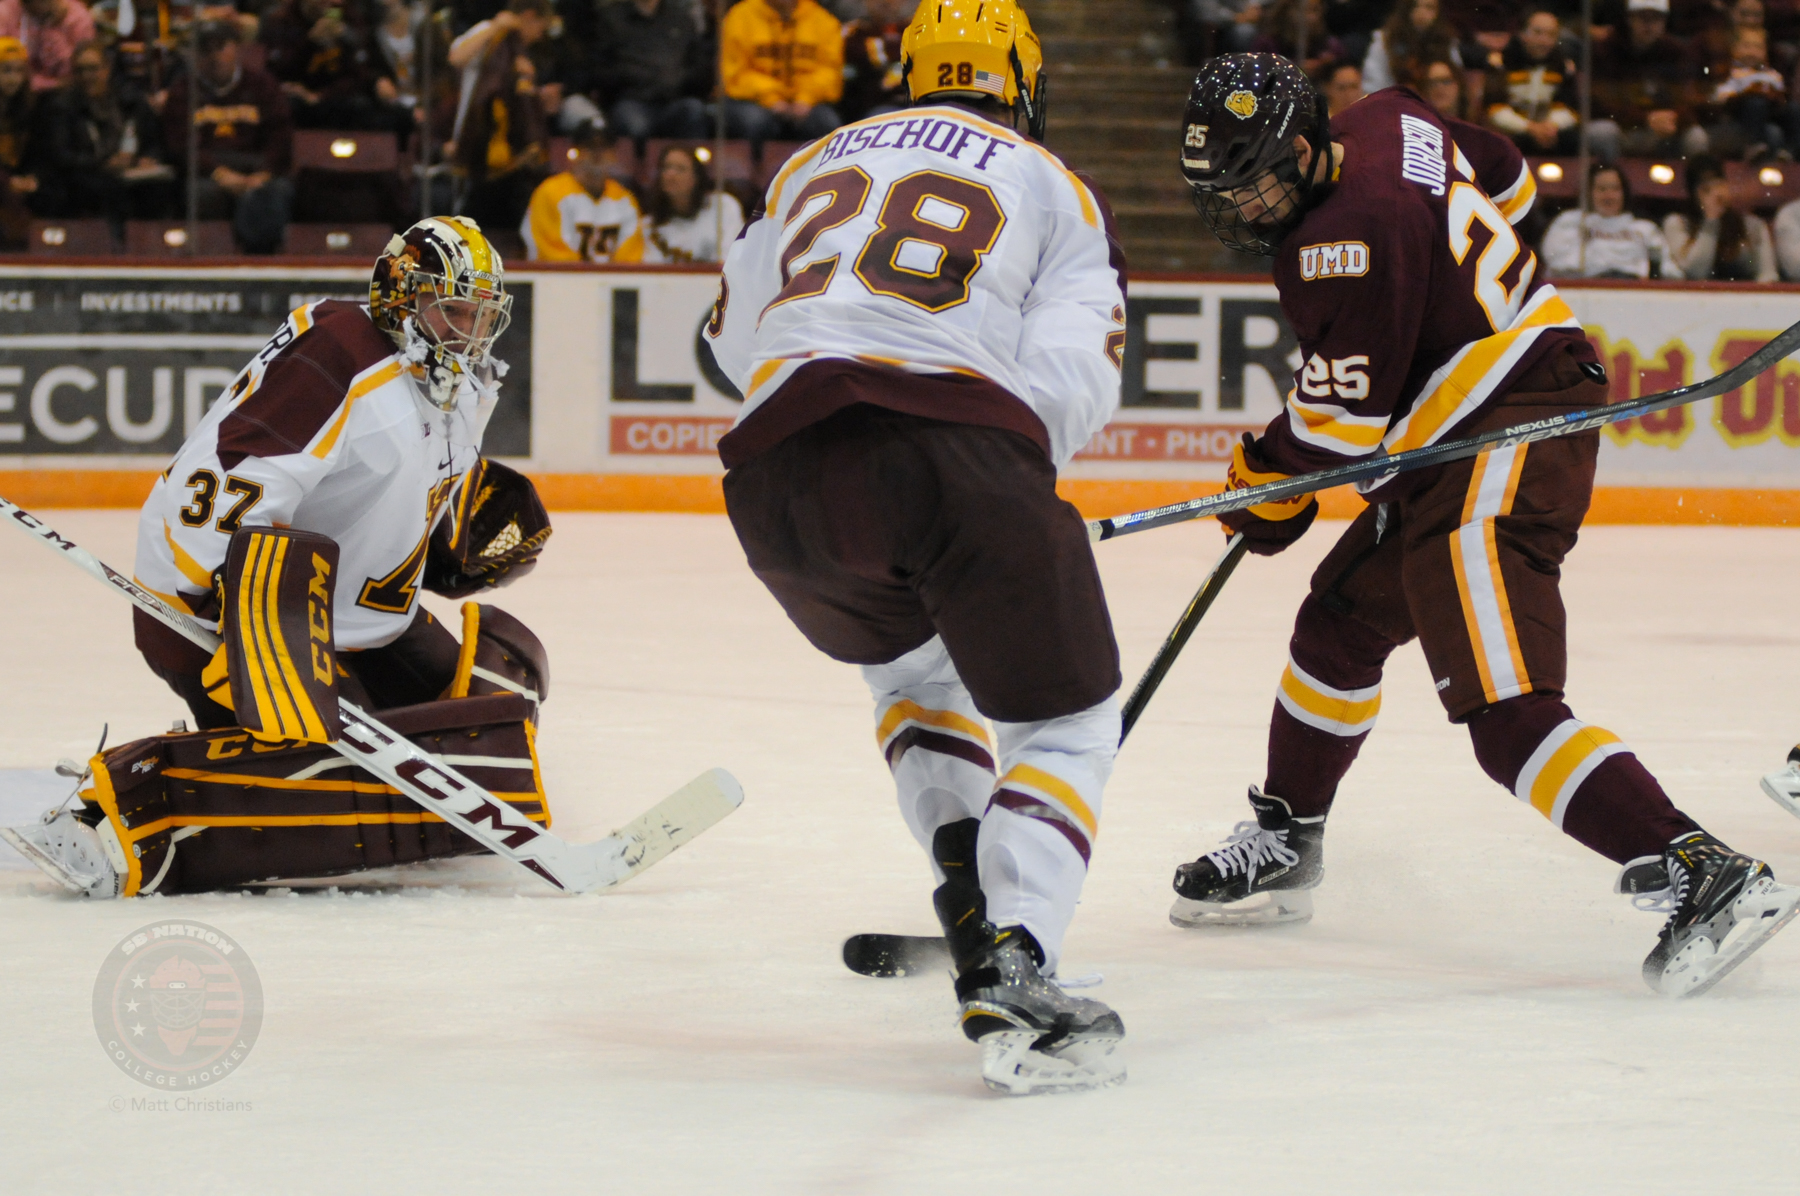 NCAA: Minnesota's Jake Bischoff And Brent Gates Each Score Twice In Shutout Win